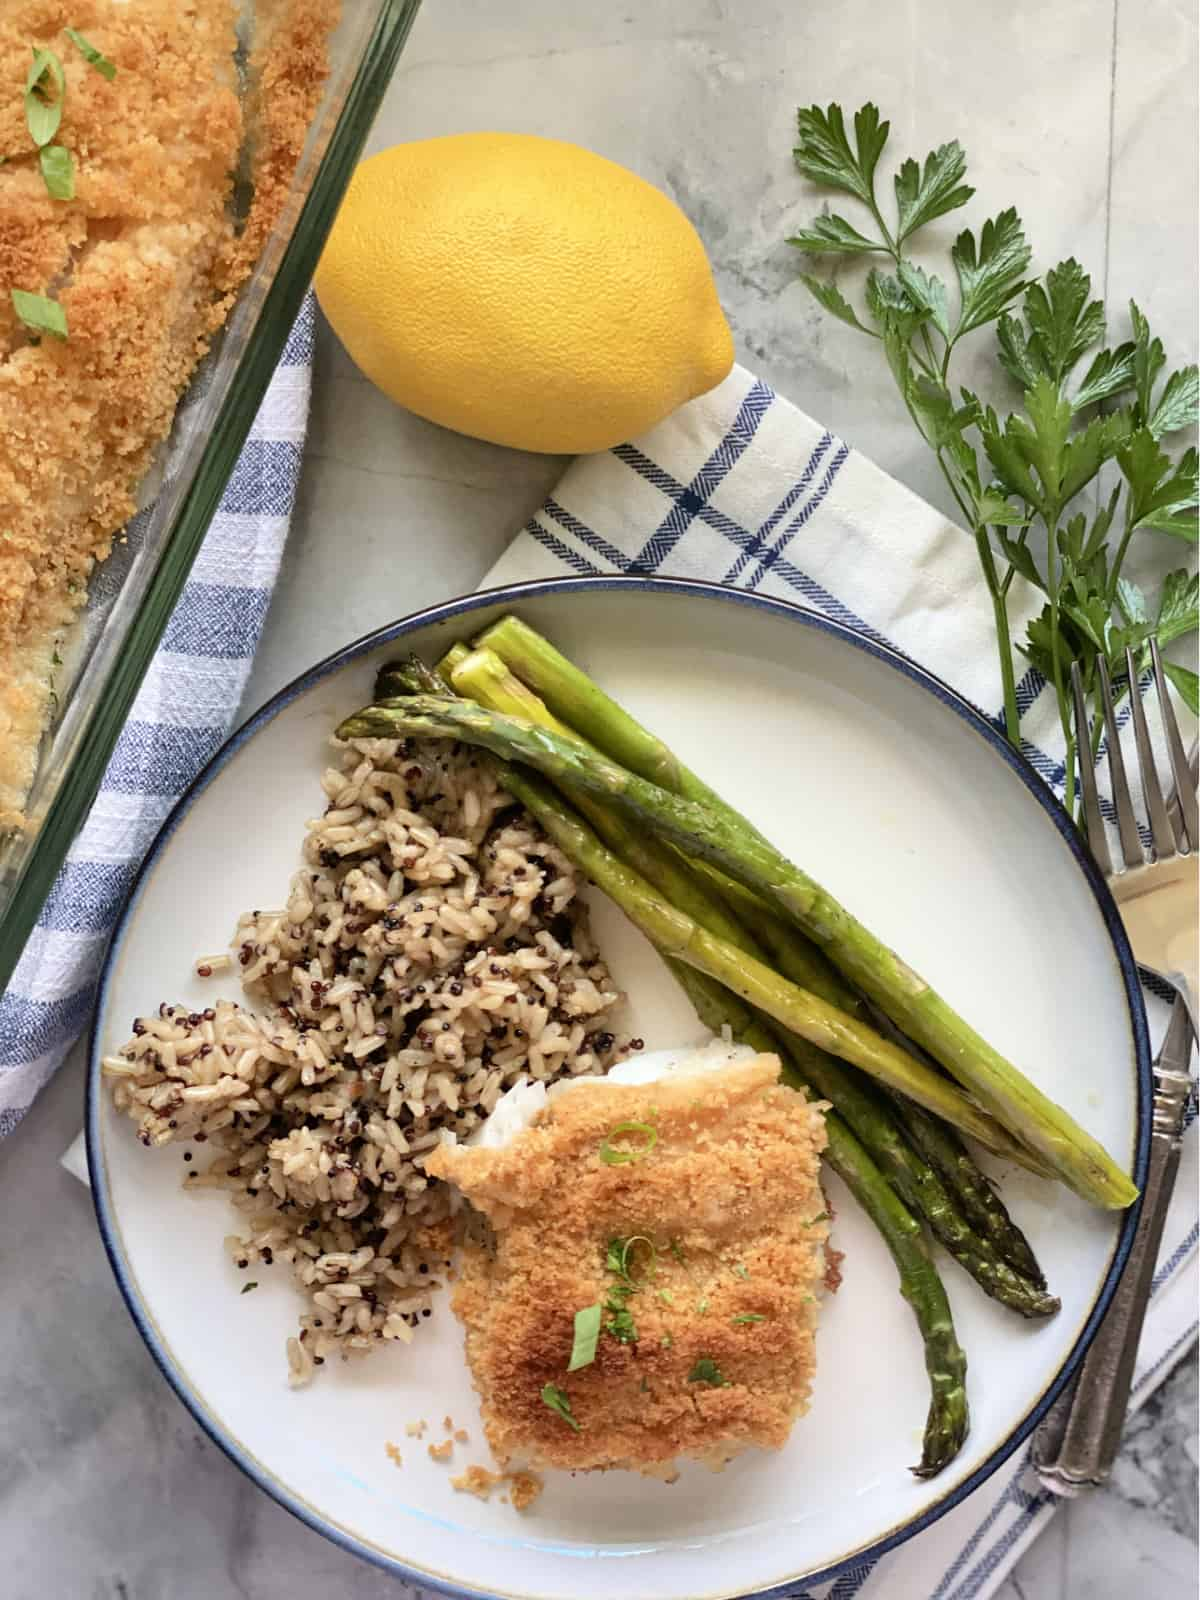 Top view of a white plate with breaded fish, asparagus, and wild rice.